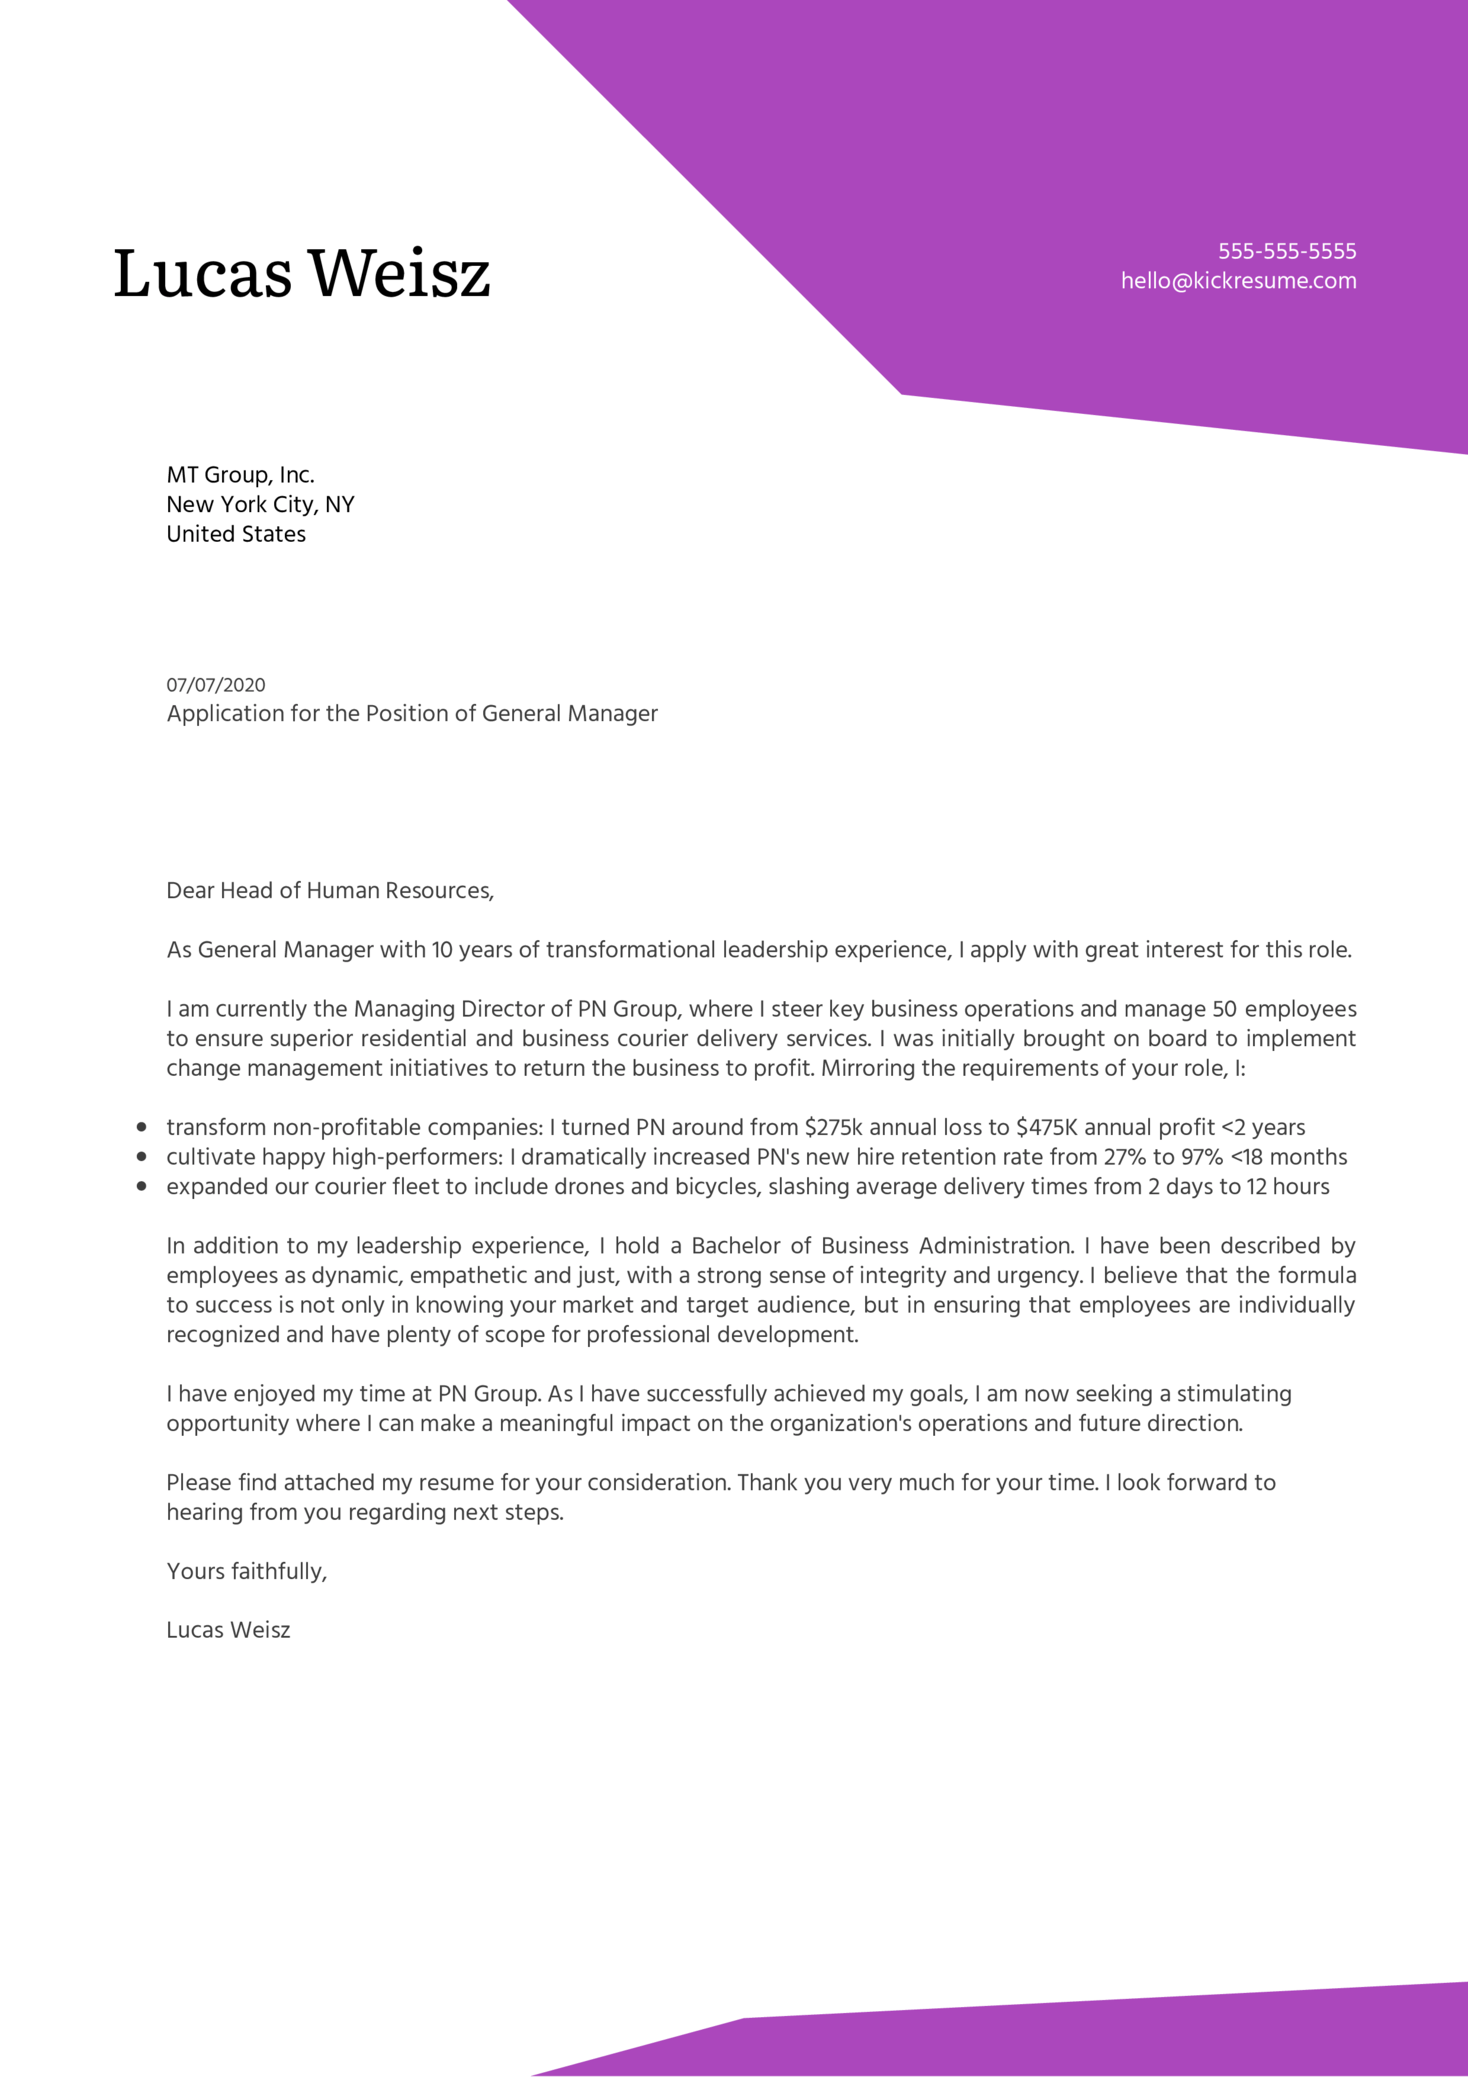 General Manager Cover Letter Example